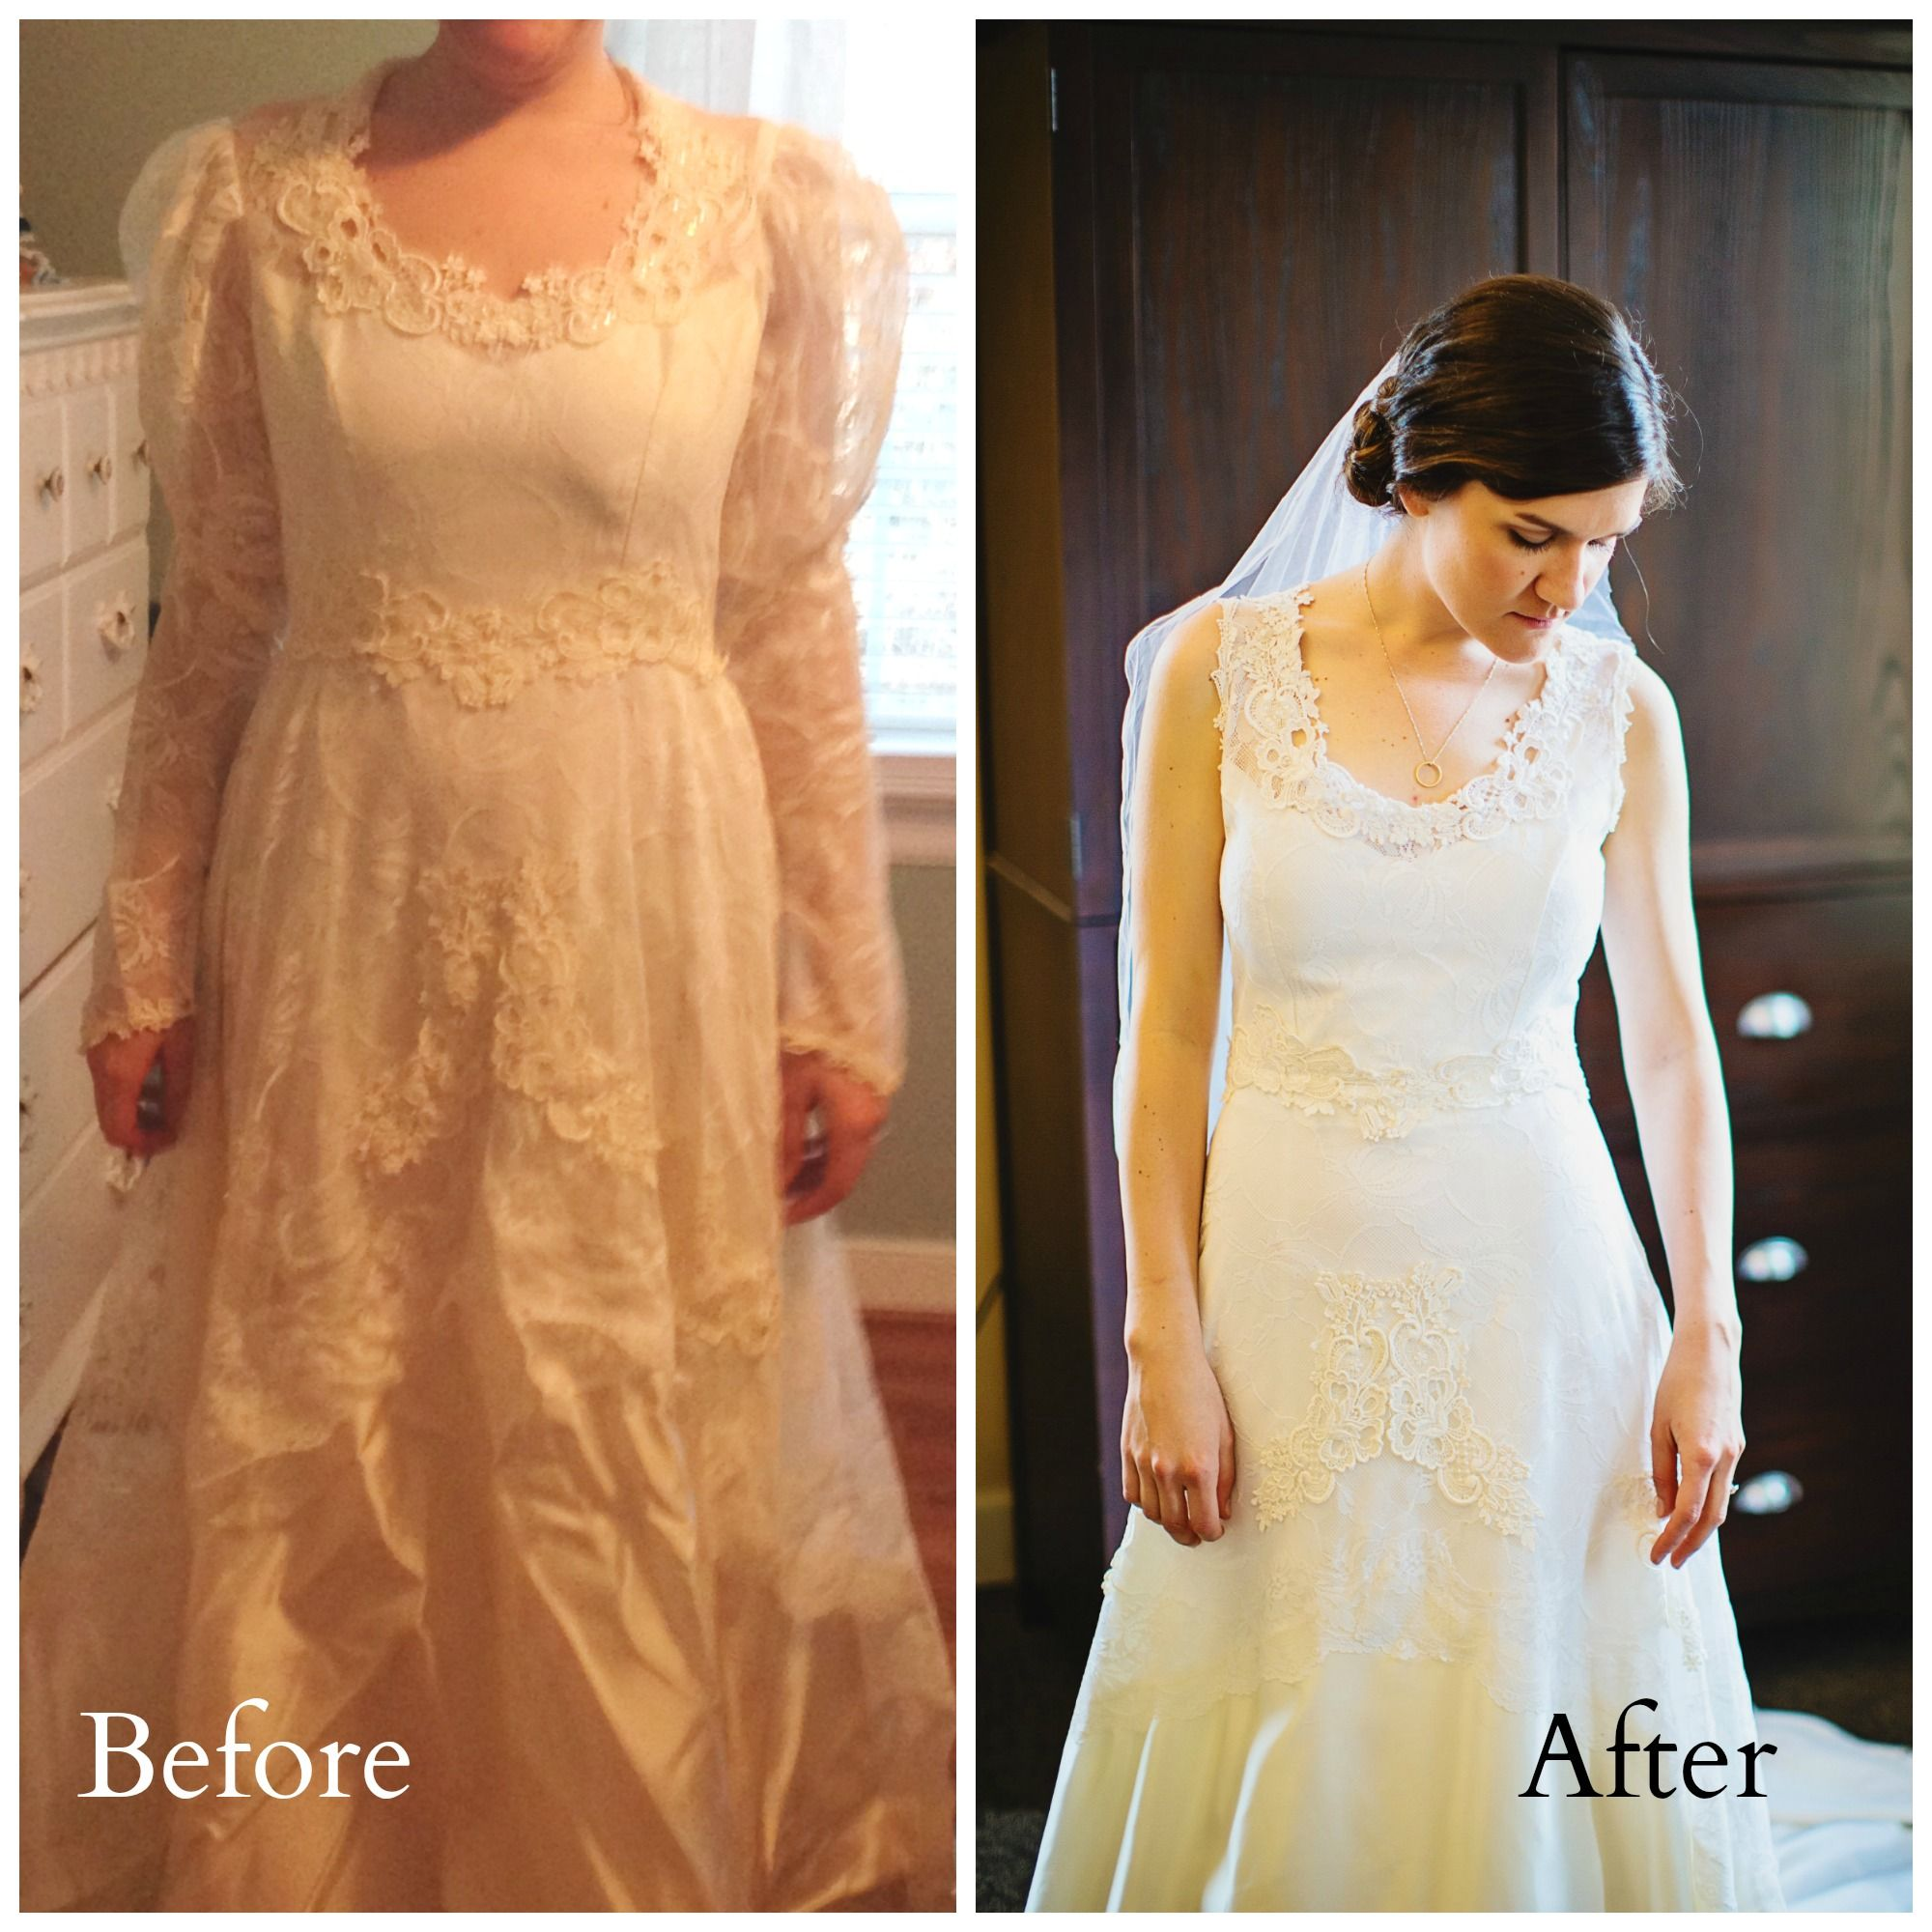 6 Tips For Wearing Your Mother's Wedding Dress